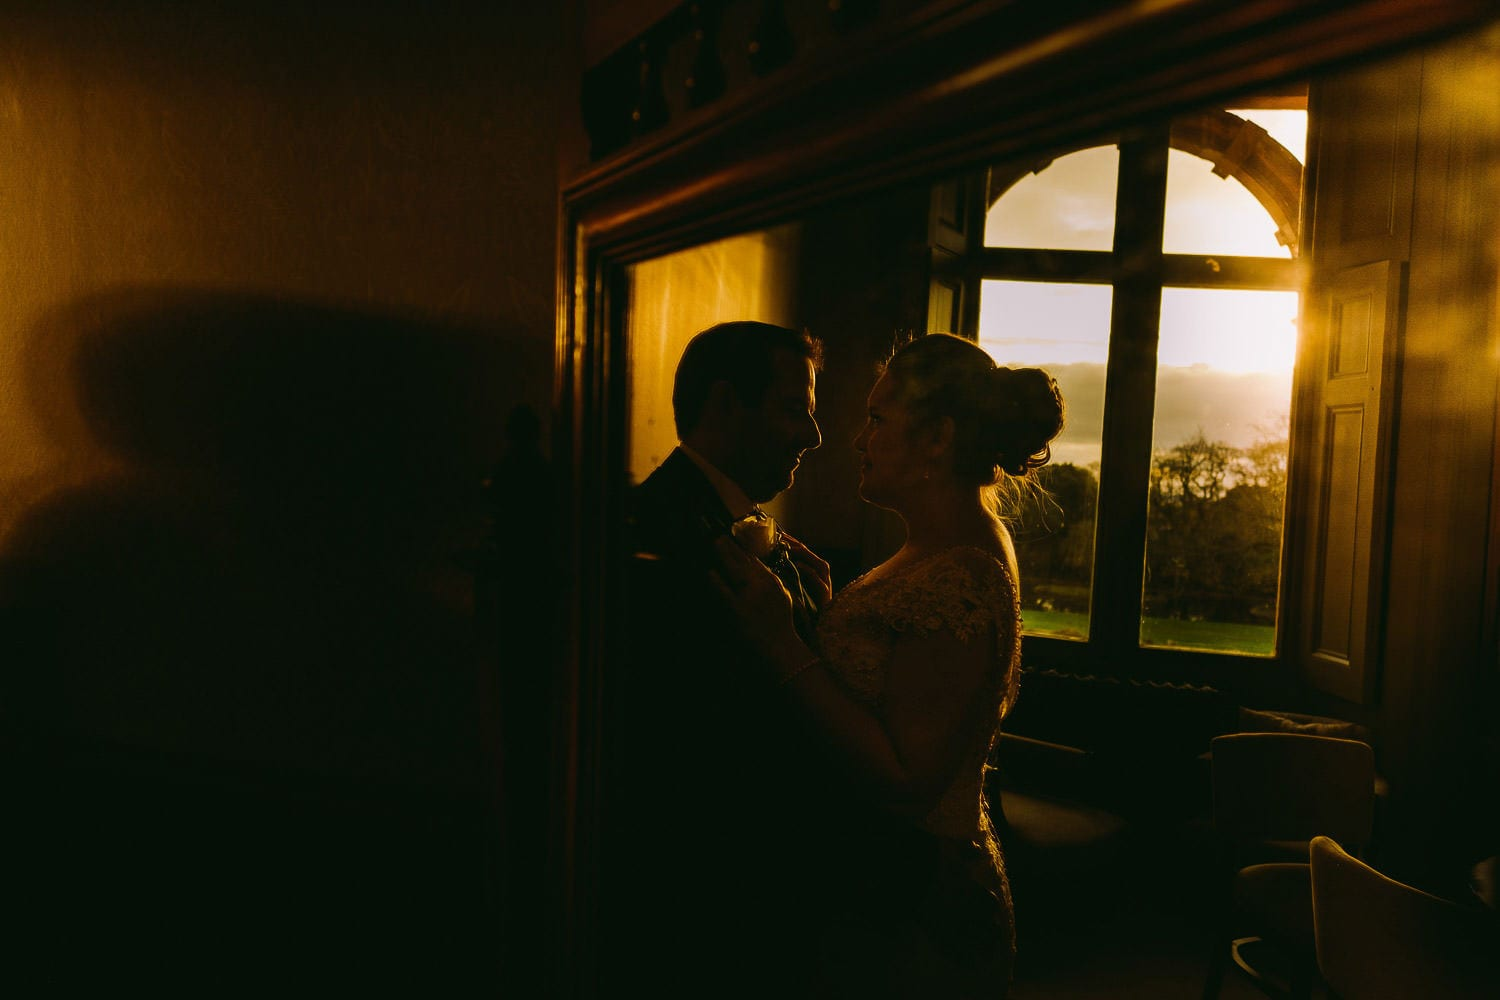 Silhouette of bride and groom by the window